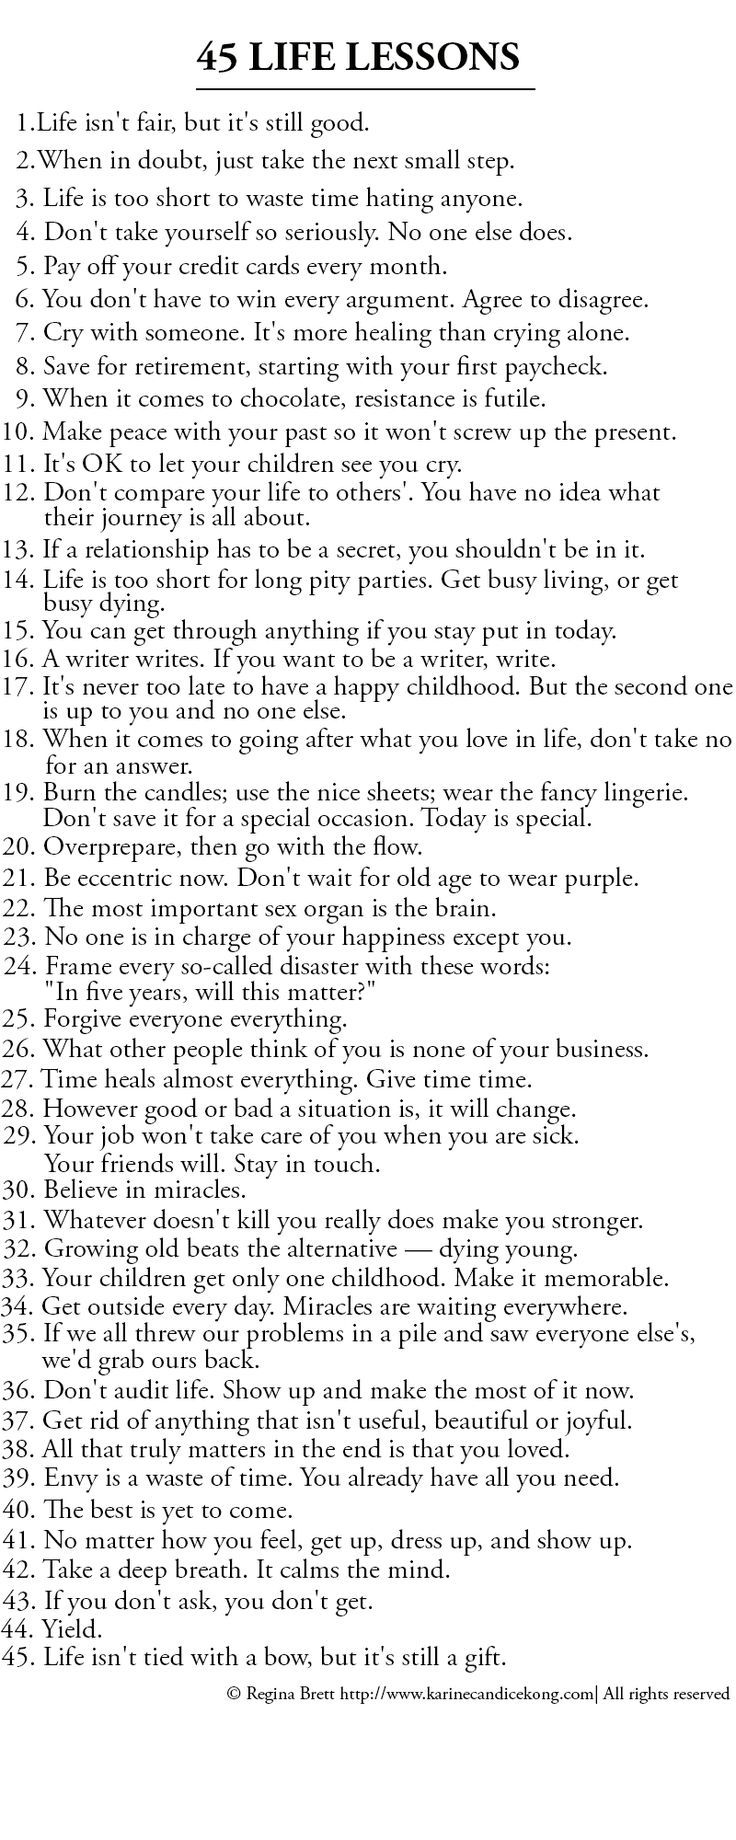 Positive Quotes Of Life Positive Quotes  List Of 45 Great Life Lessons To Life.